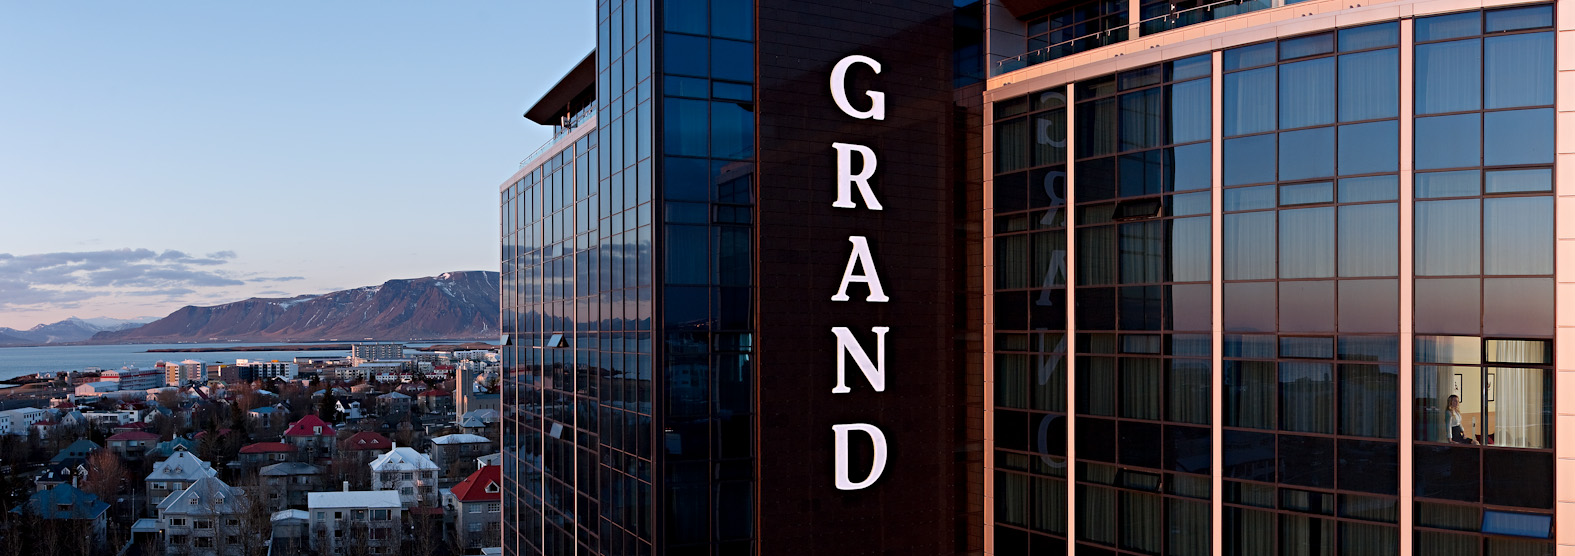 Grand Hotel Reykjavik